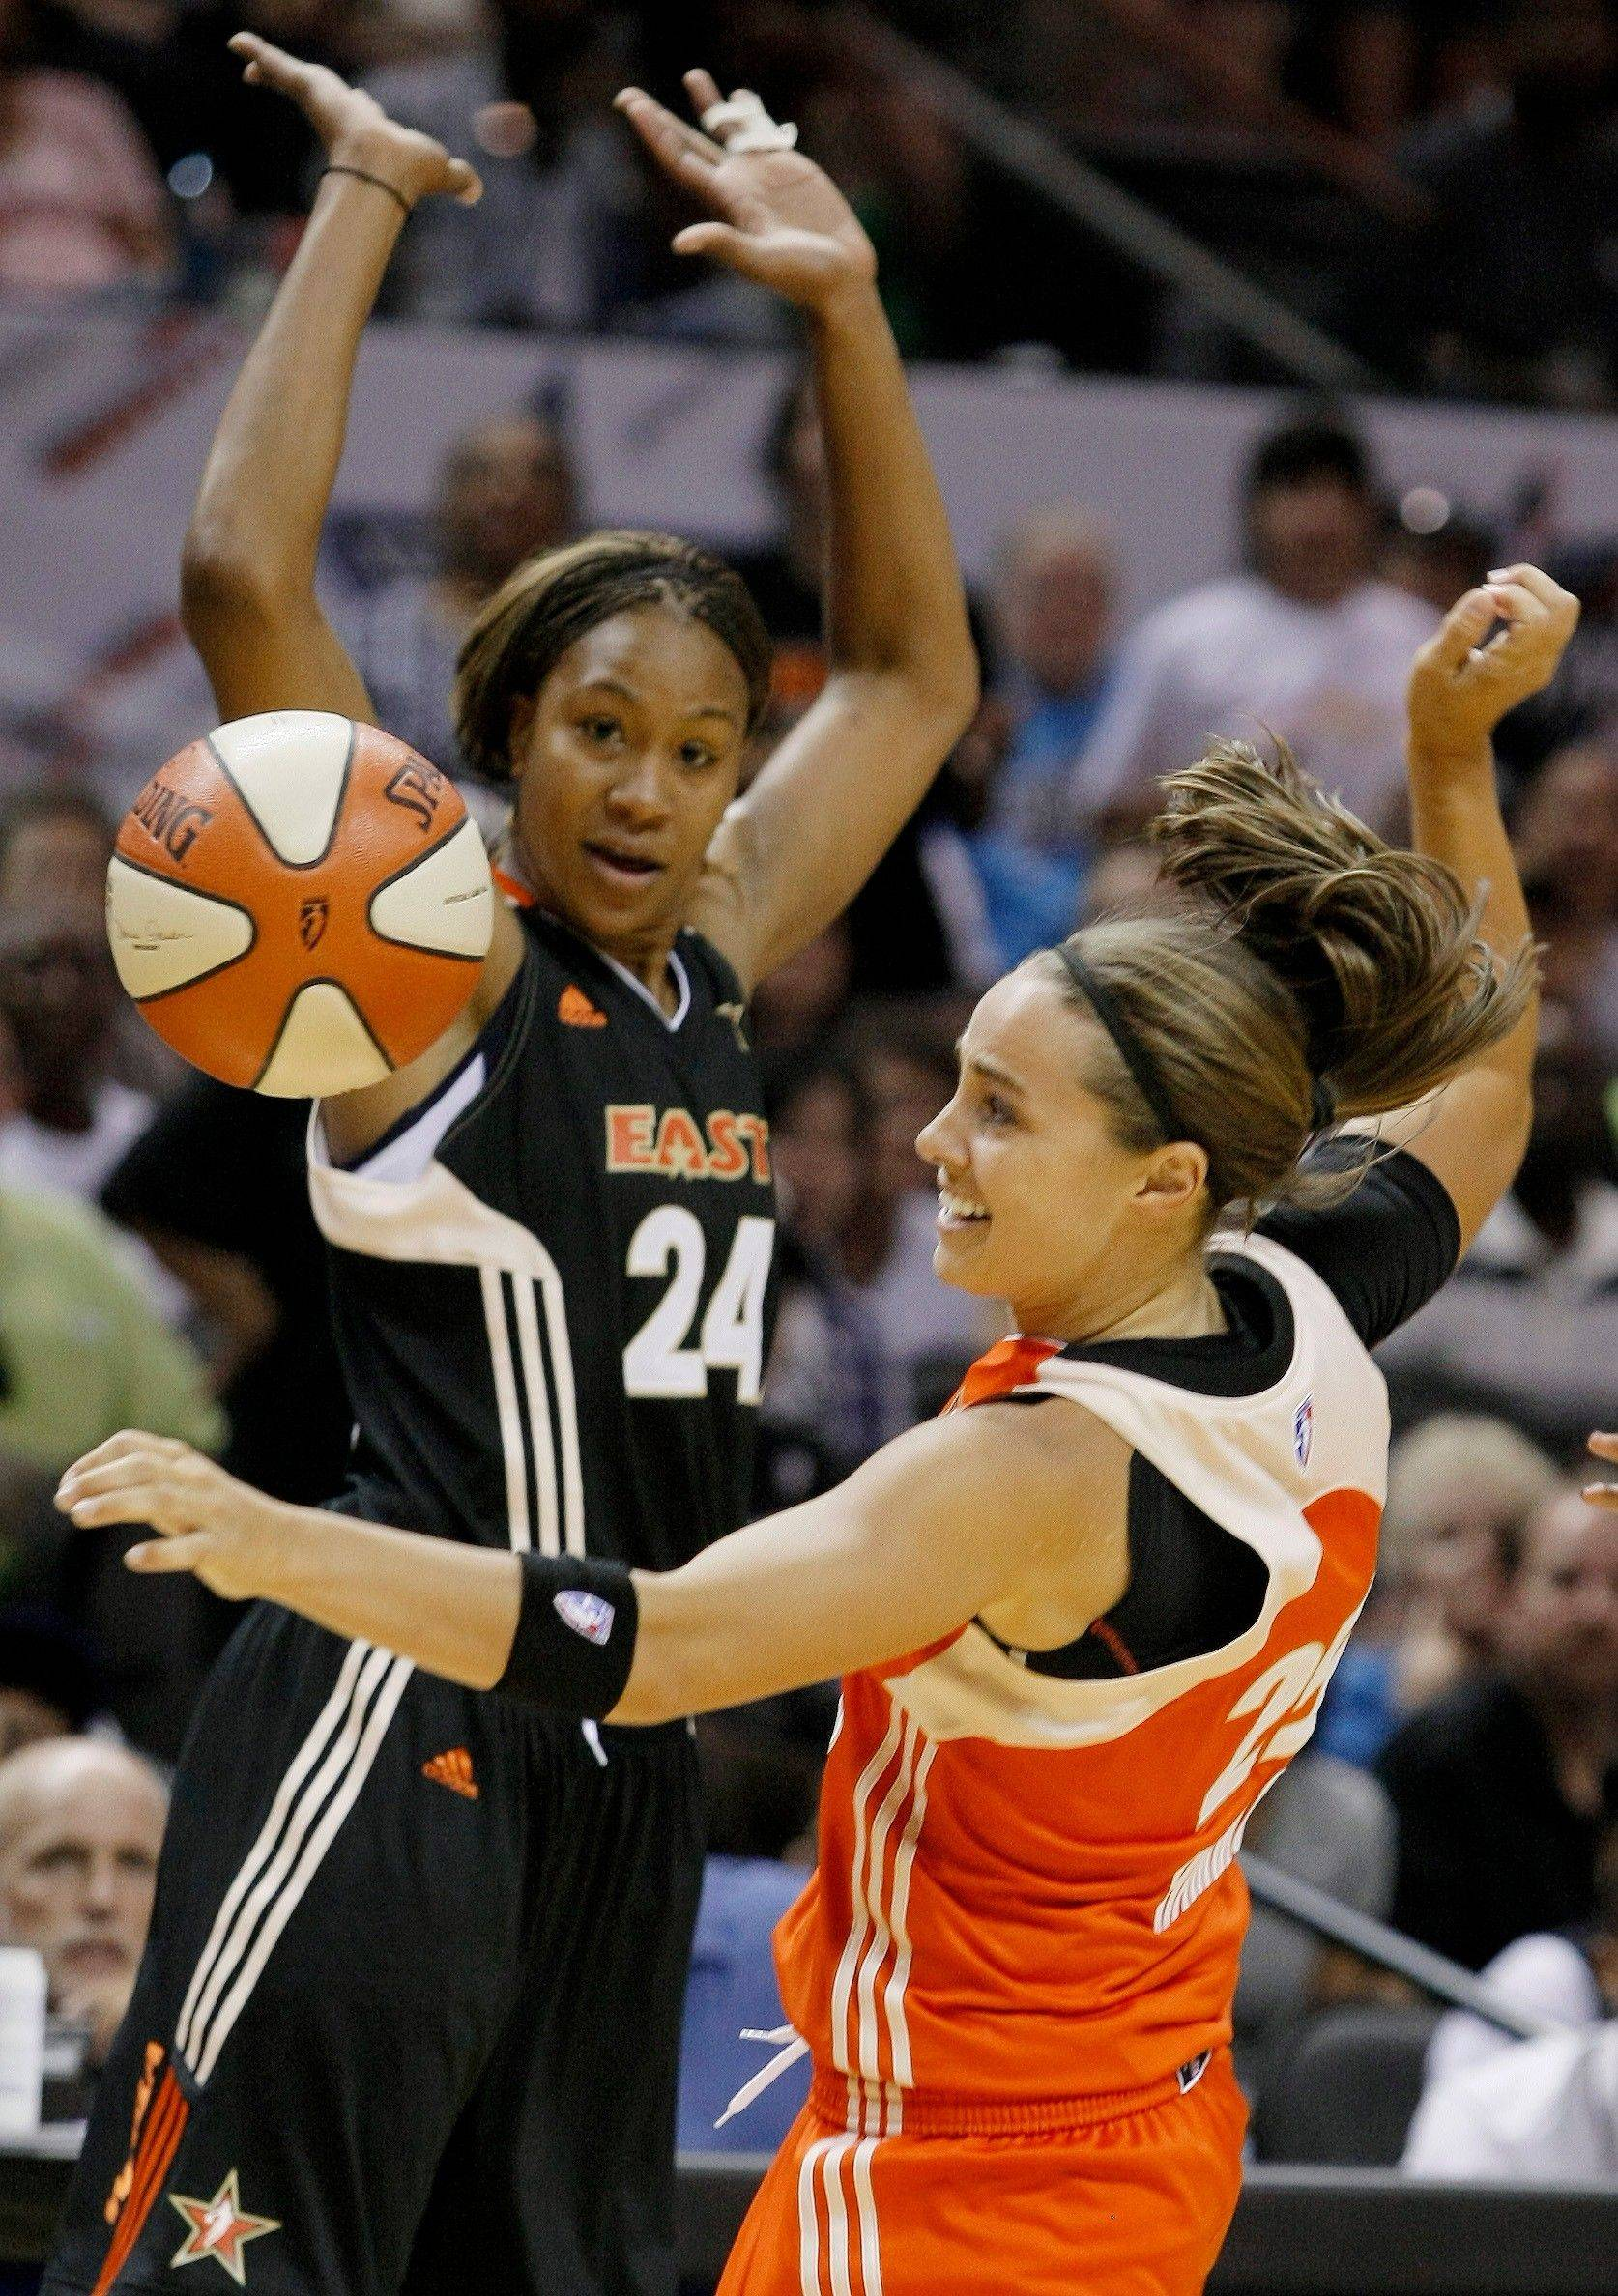 The West�s Becky Hammon, right, is blocked by the East�s Tamika Catchings during the second half of the WNBA All-Star Game. Catchings was named one of the top 15 players in the league�s history Saturday.